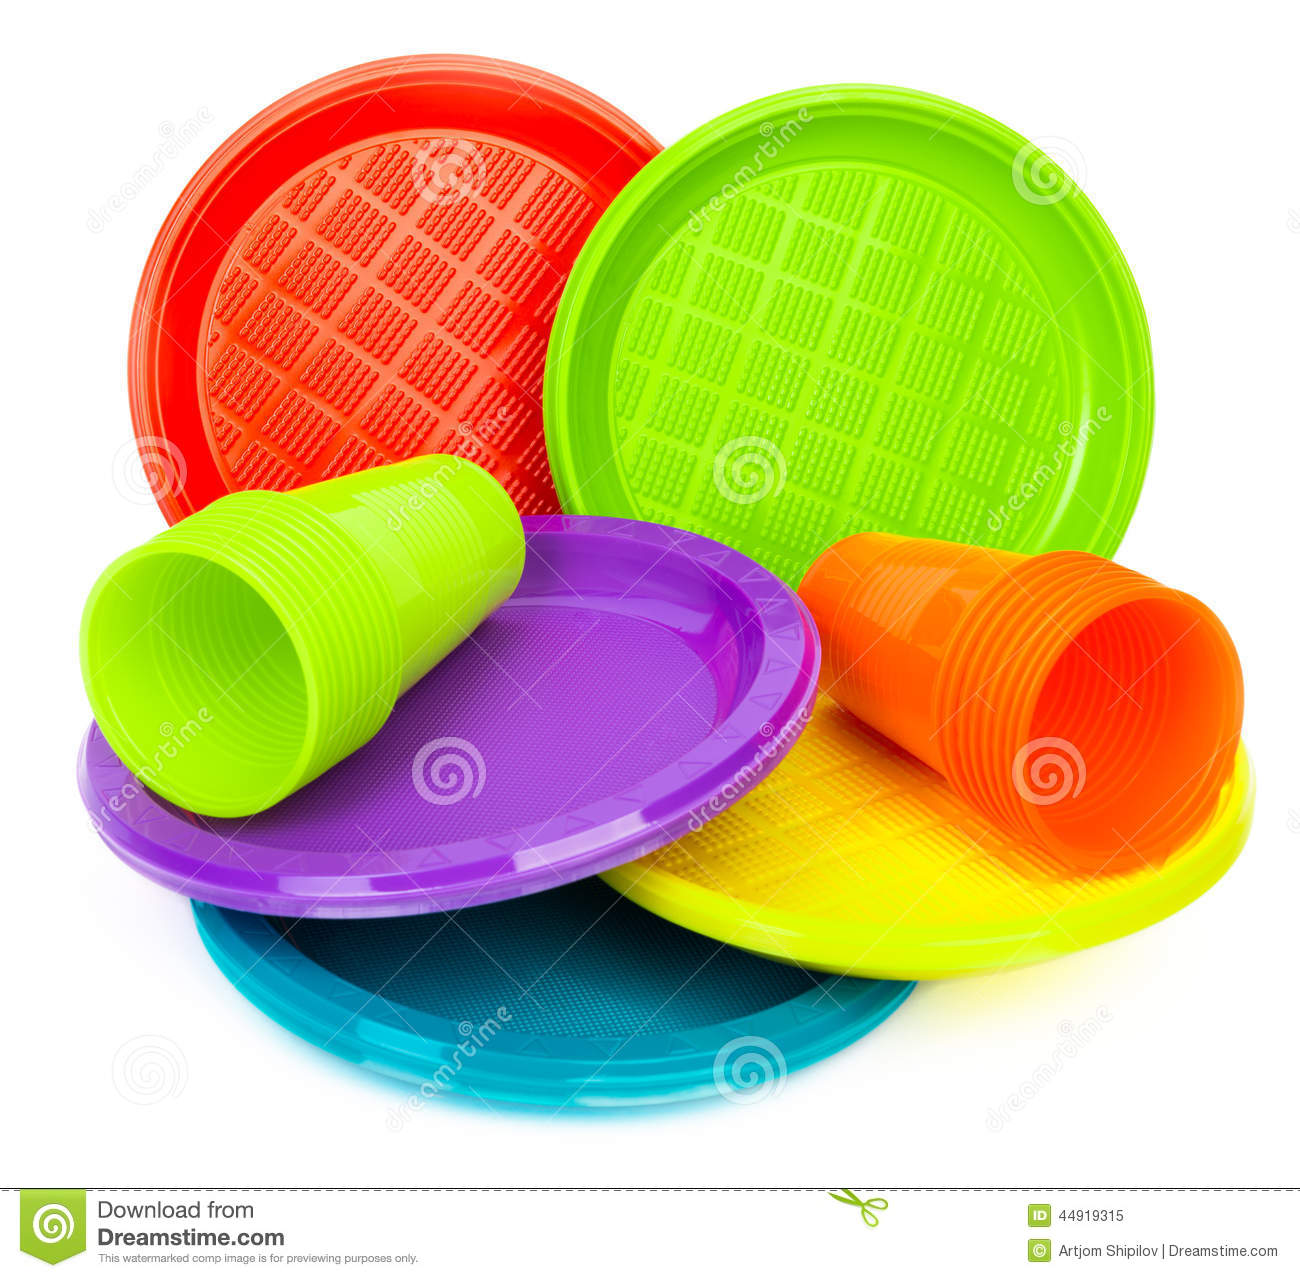 Disposable bright plastic plates and cups on white  sc 1 st  Dreamstime.com & Disposable Bright Plastic Plates And Cups On White Stock Image ...